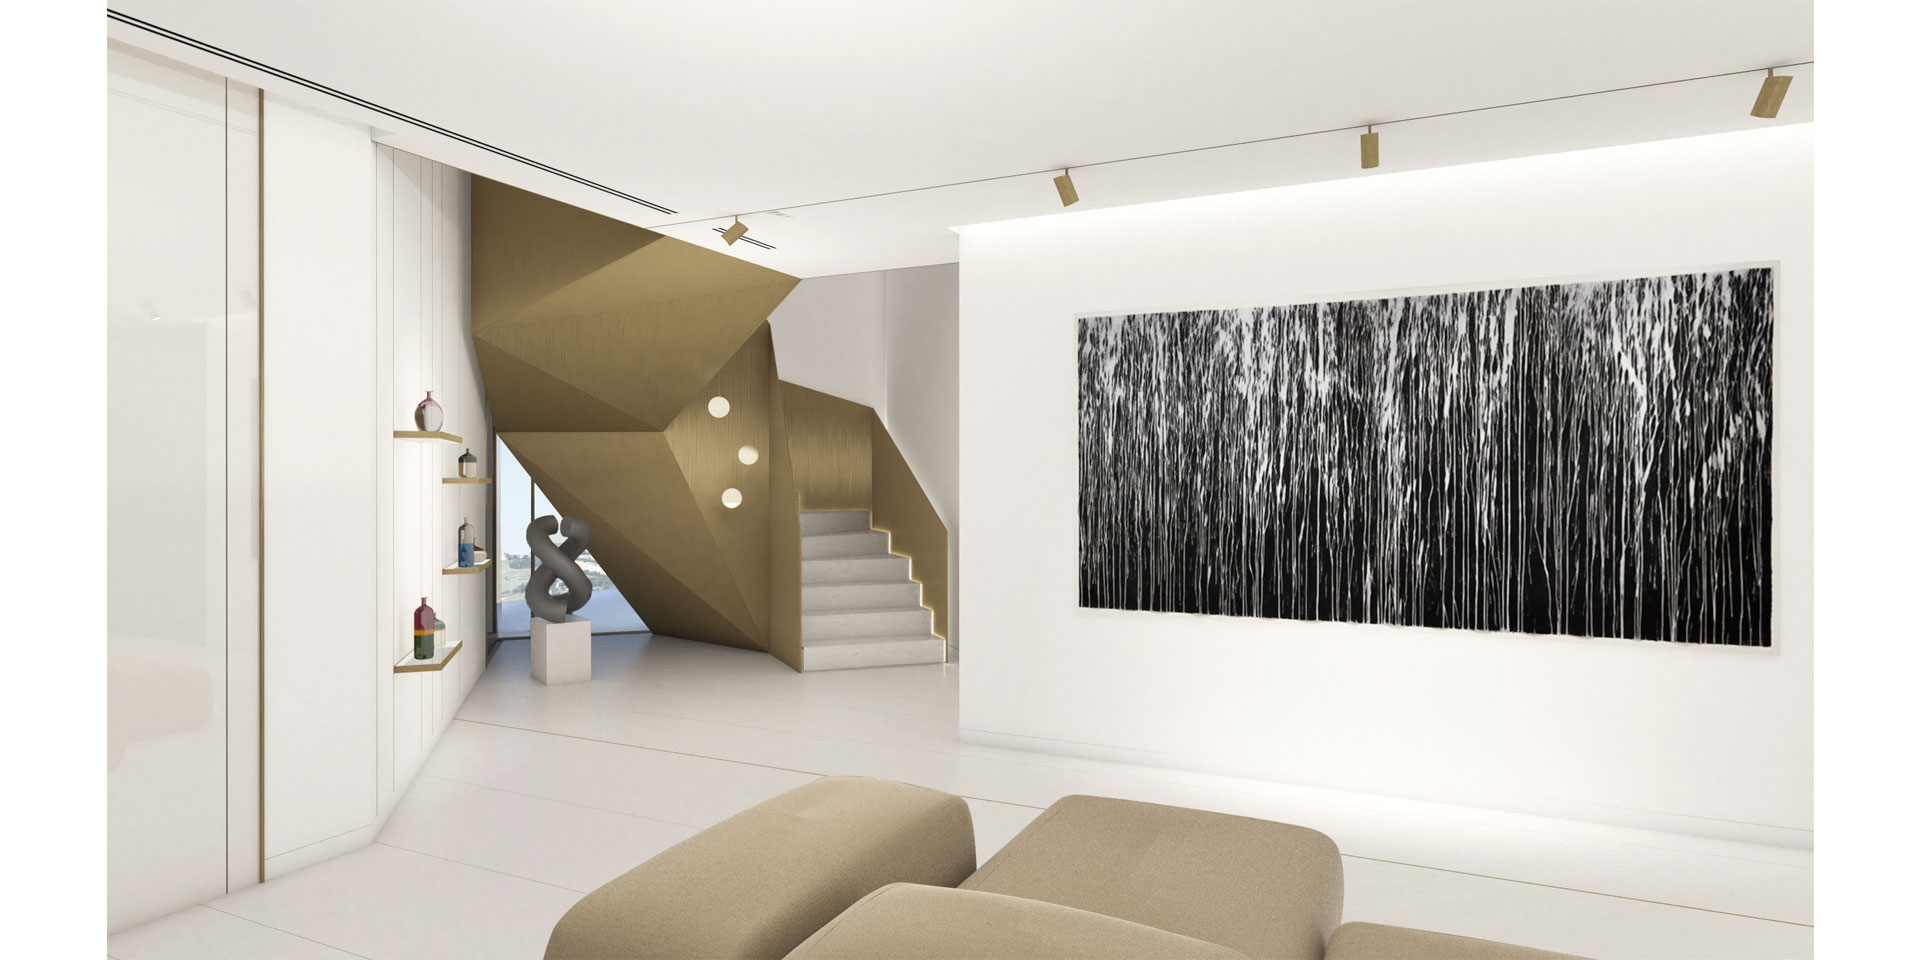 archinow_TAD_private-house_13